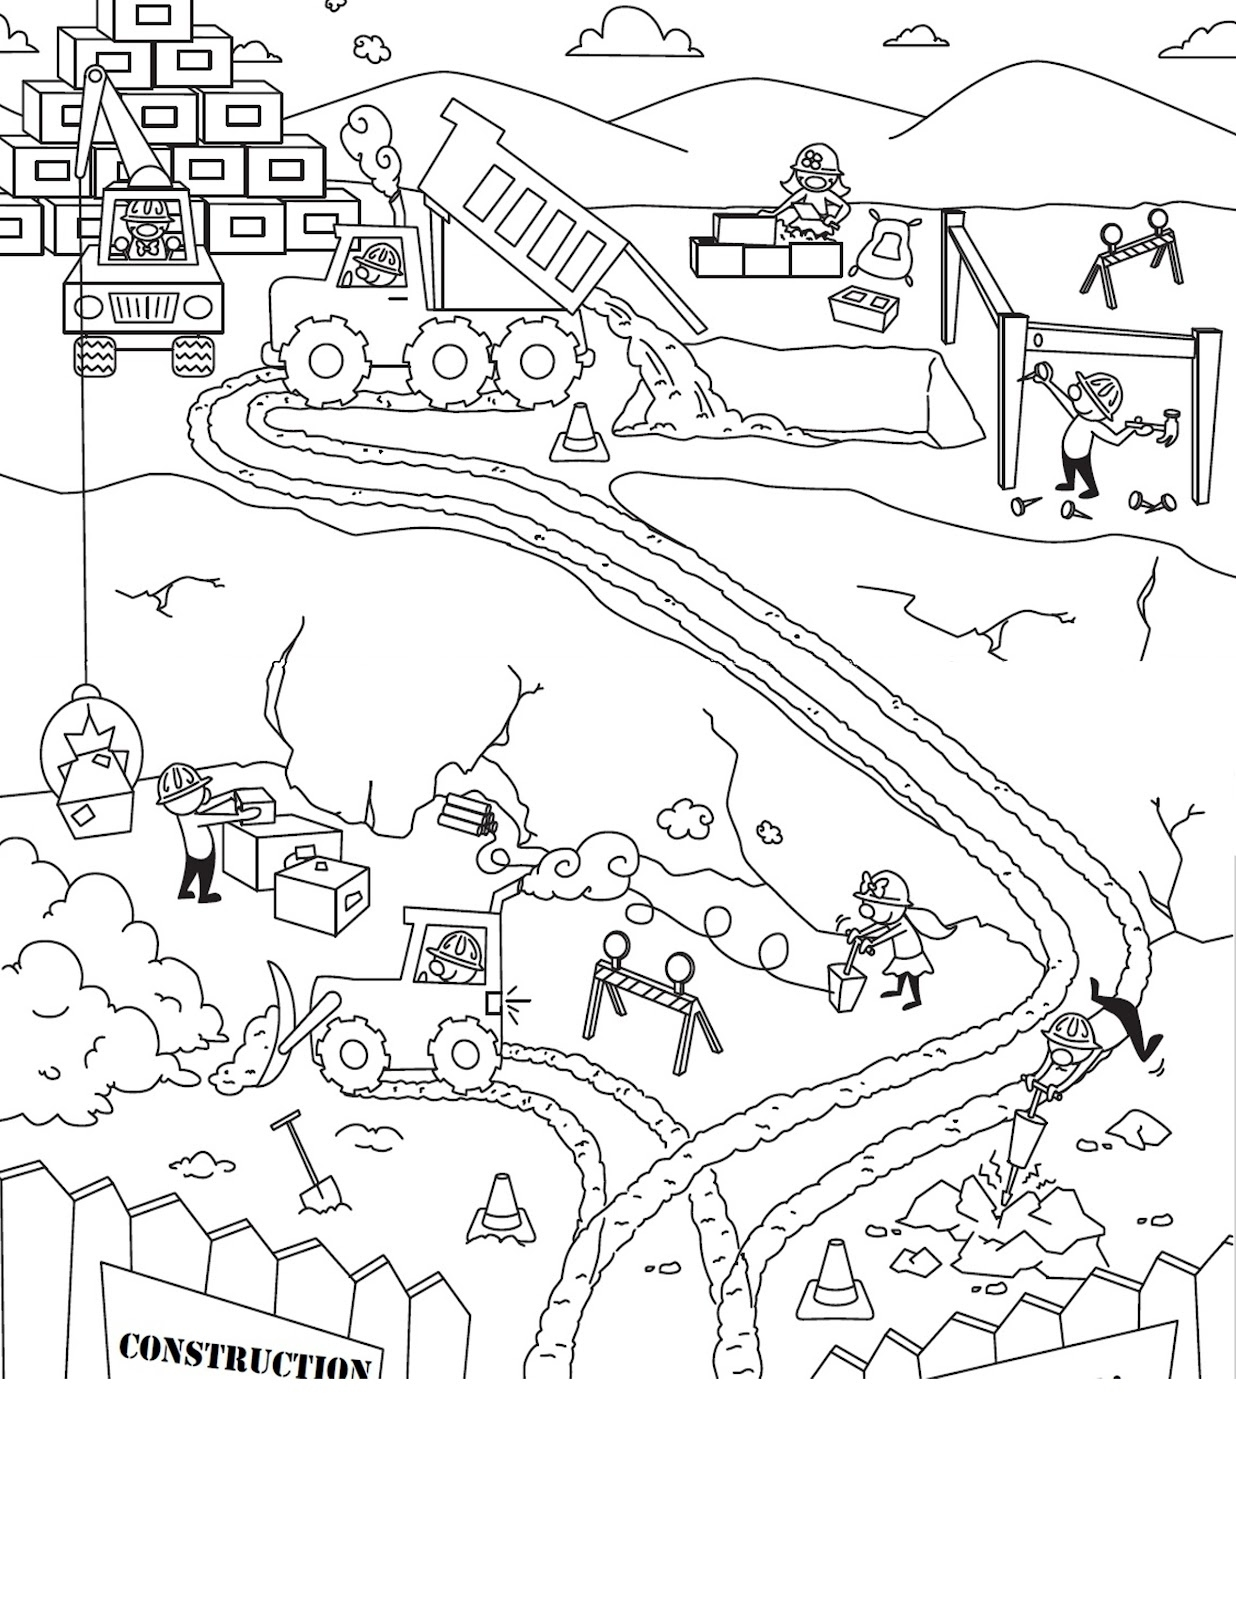 Free Construction Coloring Pages At Getcolorings